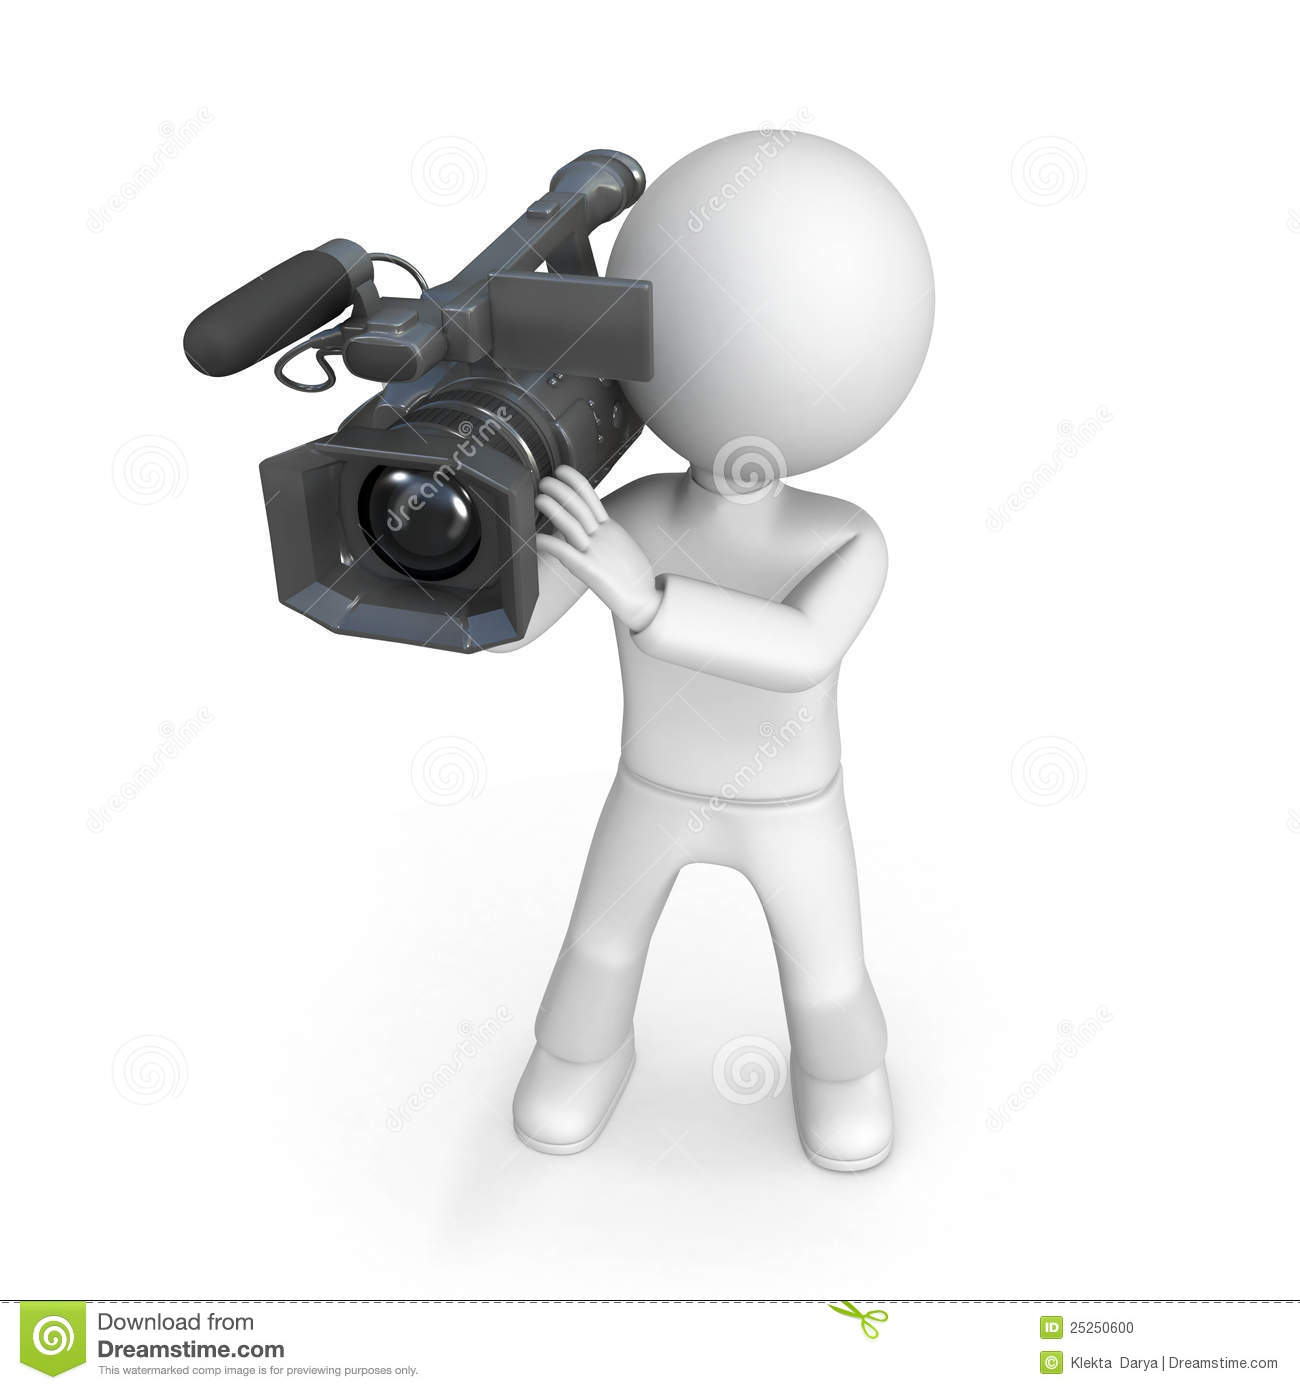 Person With Video Camera Stock Photo - Image: 25250600